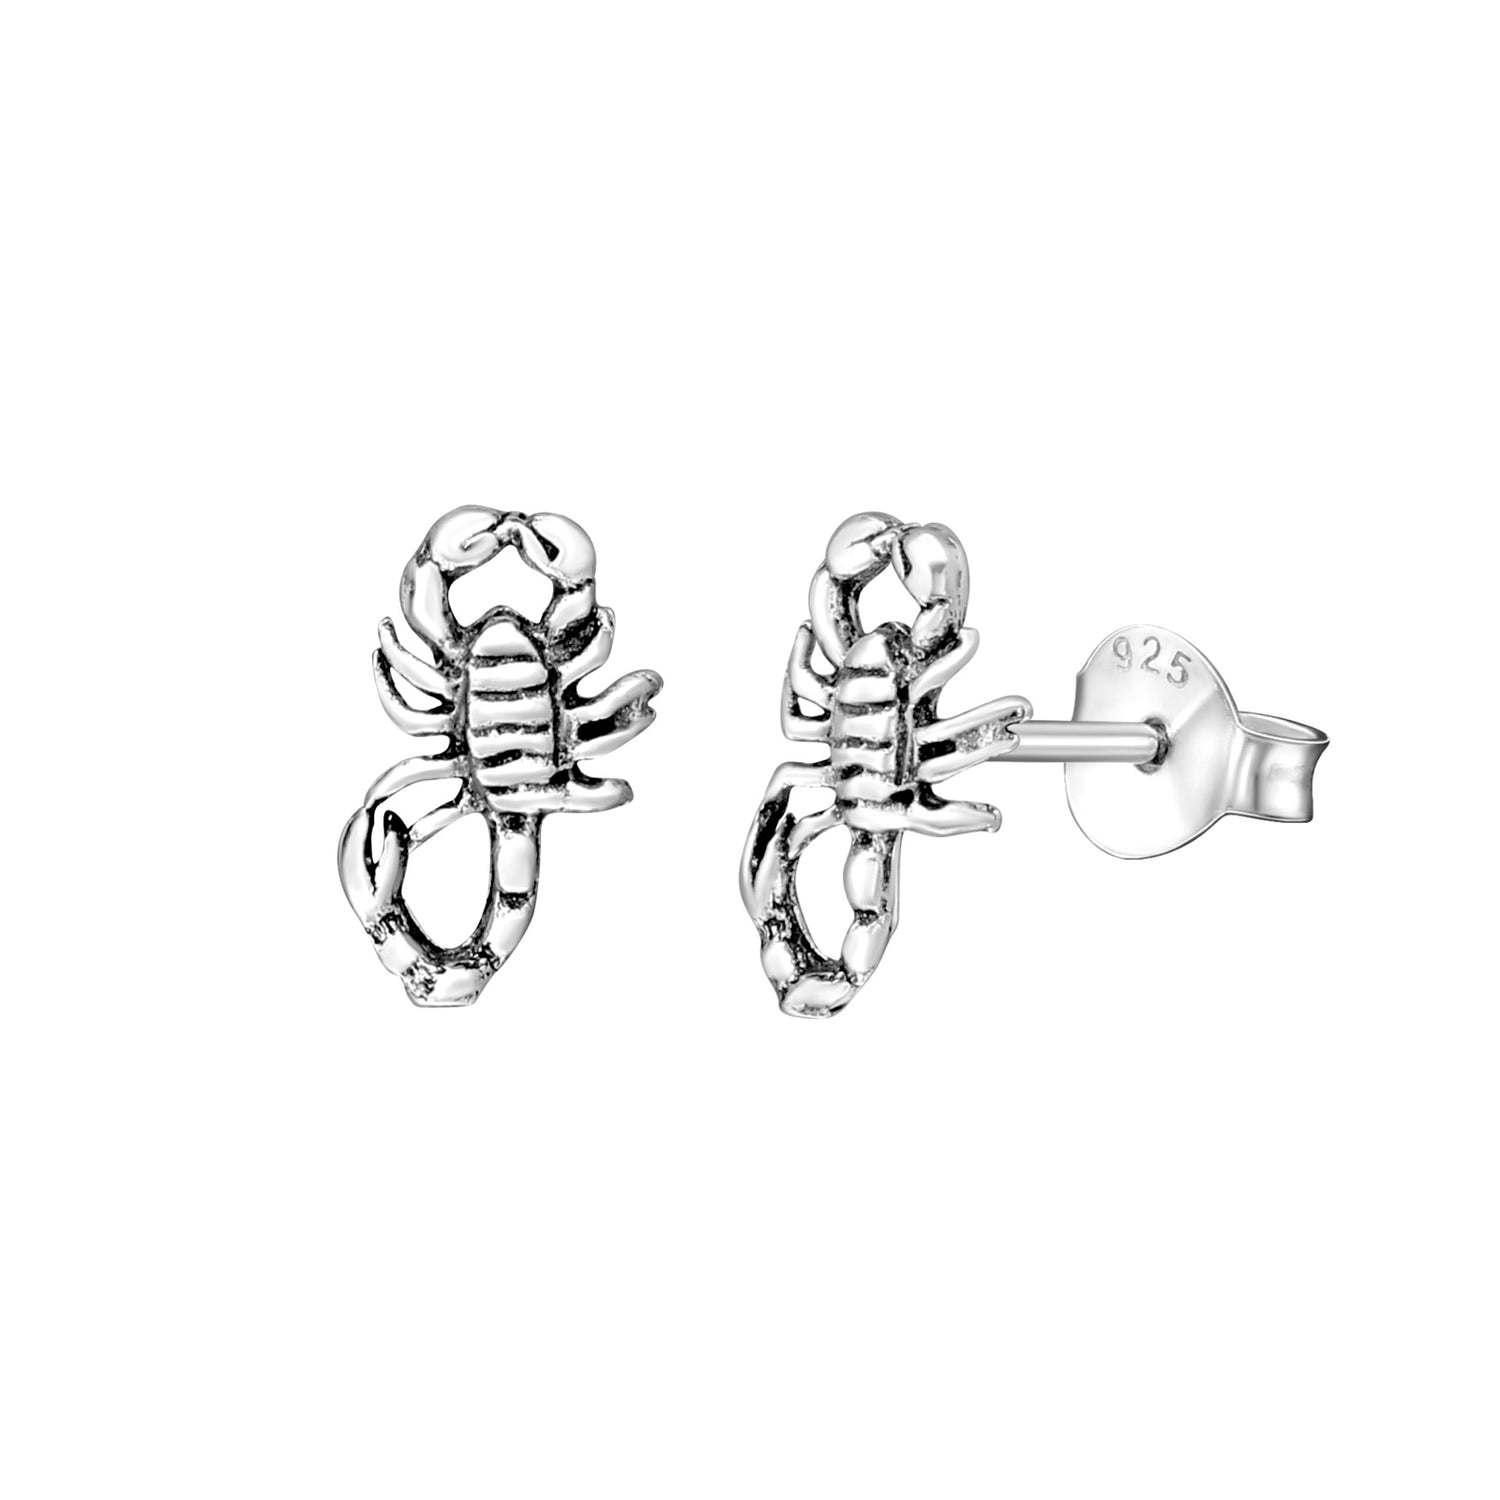 Scorpio Stud Earrings